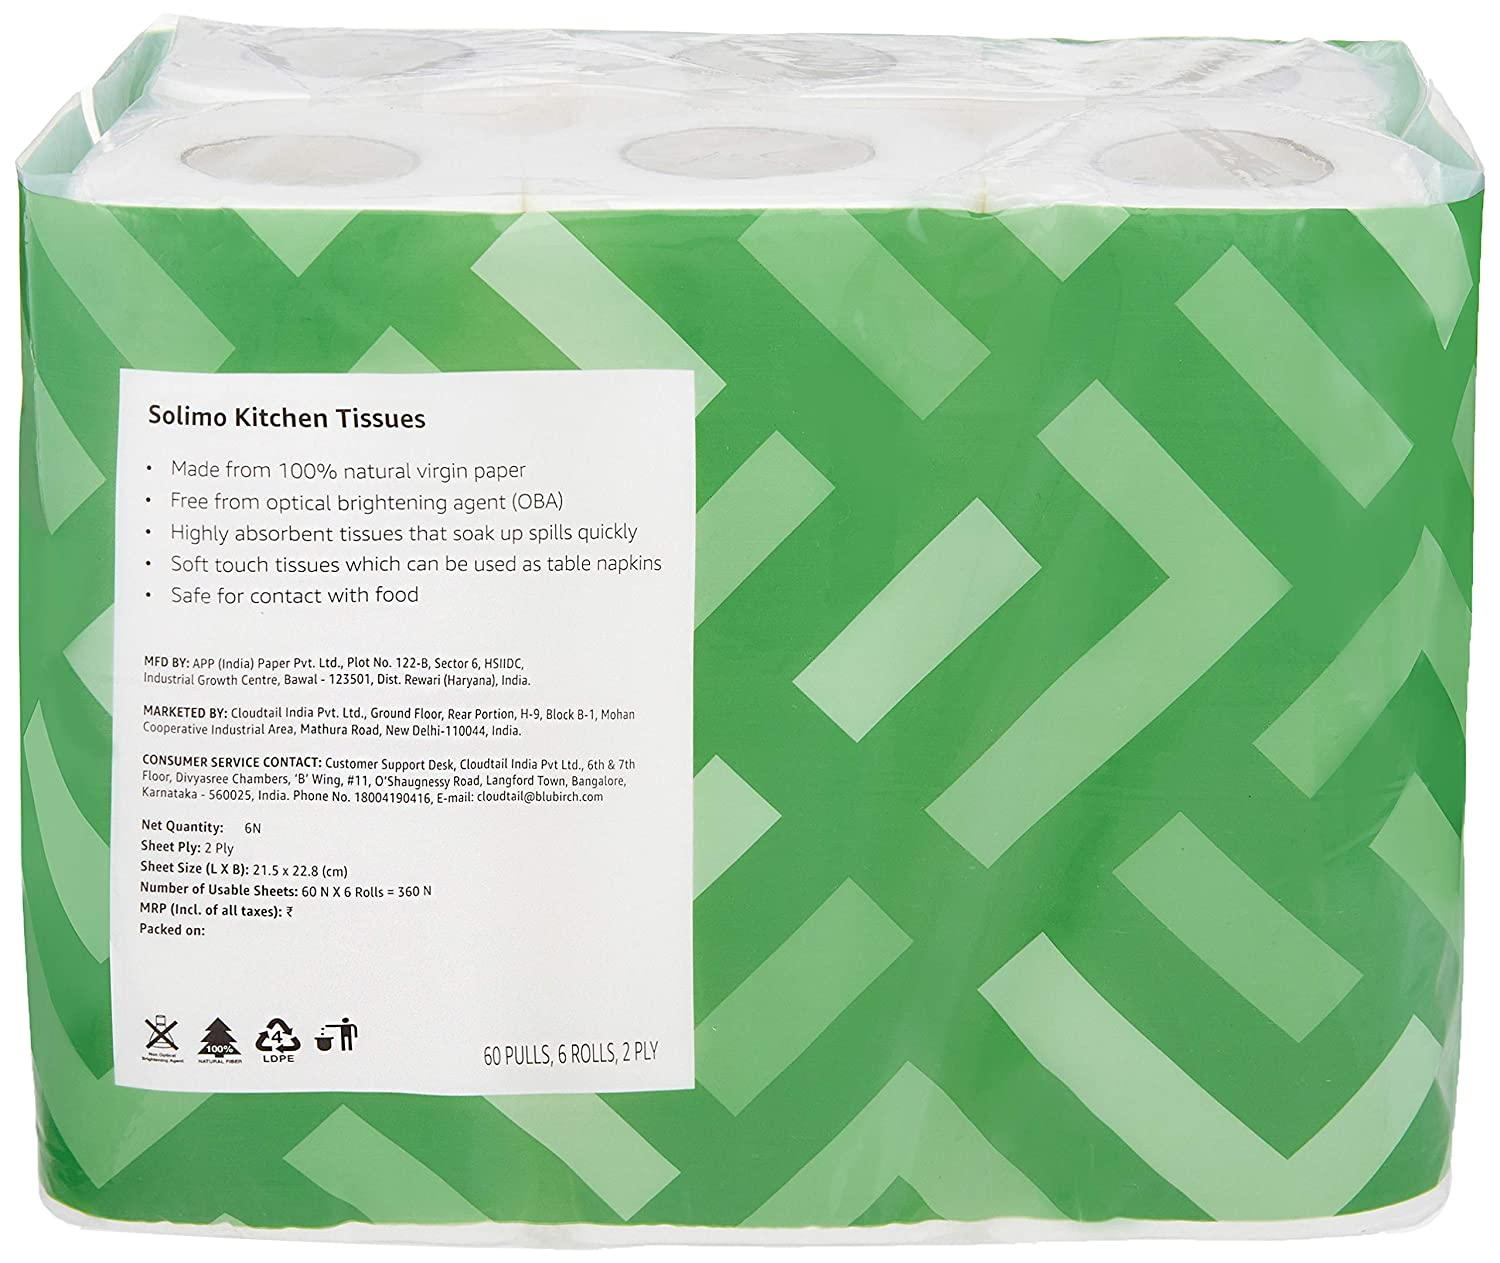 Amazon Brand - Solimo 2 Ply Kitchen Tissue/Towel Paper Roll - 6 Rolls (60  Pulls Per Roll)